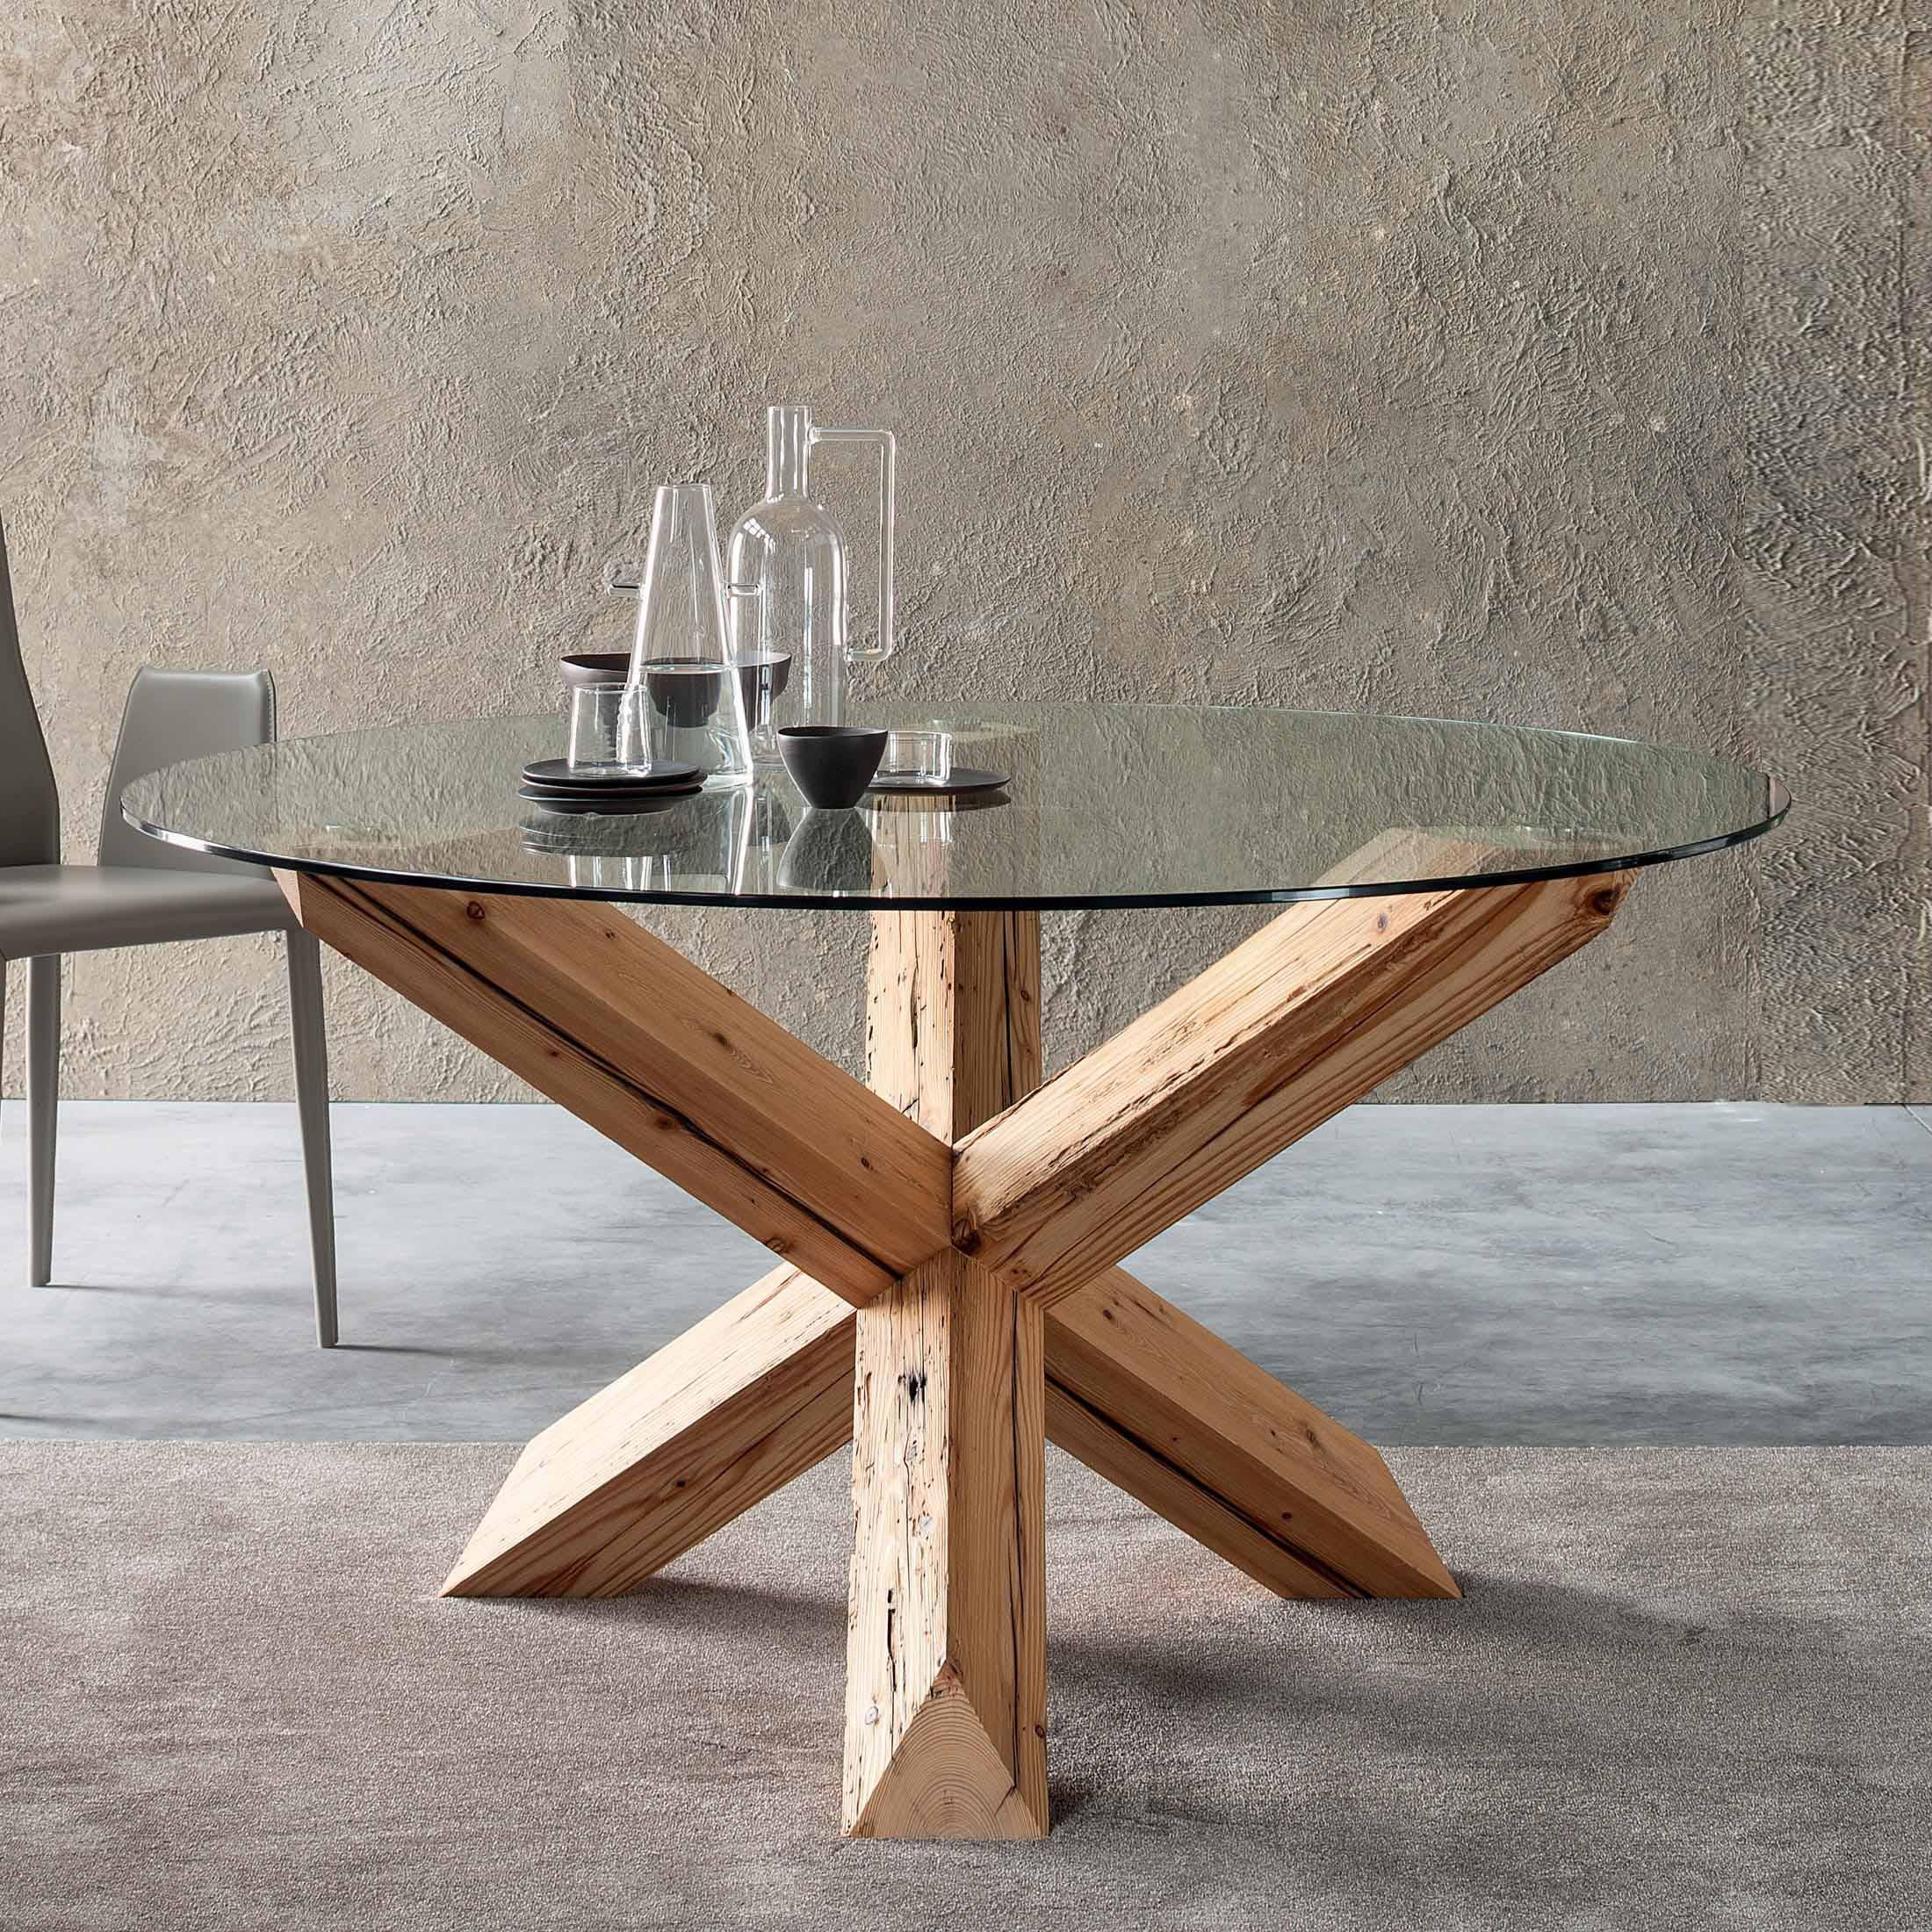 691755972 Handmade of natural wooden aged fir base table and glass top Ø 120 or at My  Italian Living Ltd